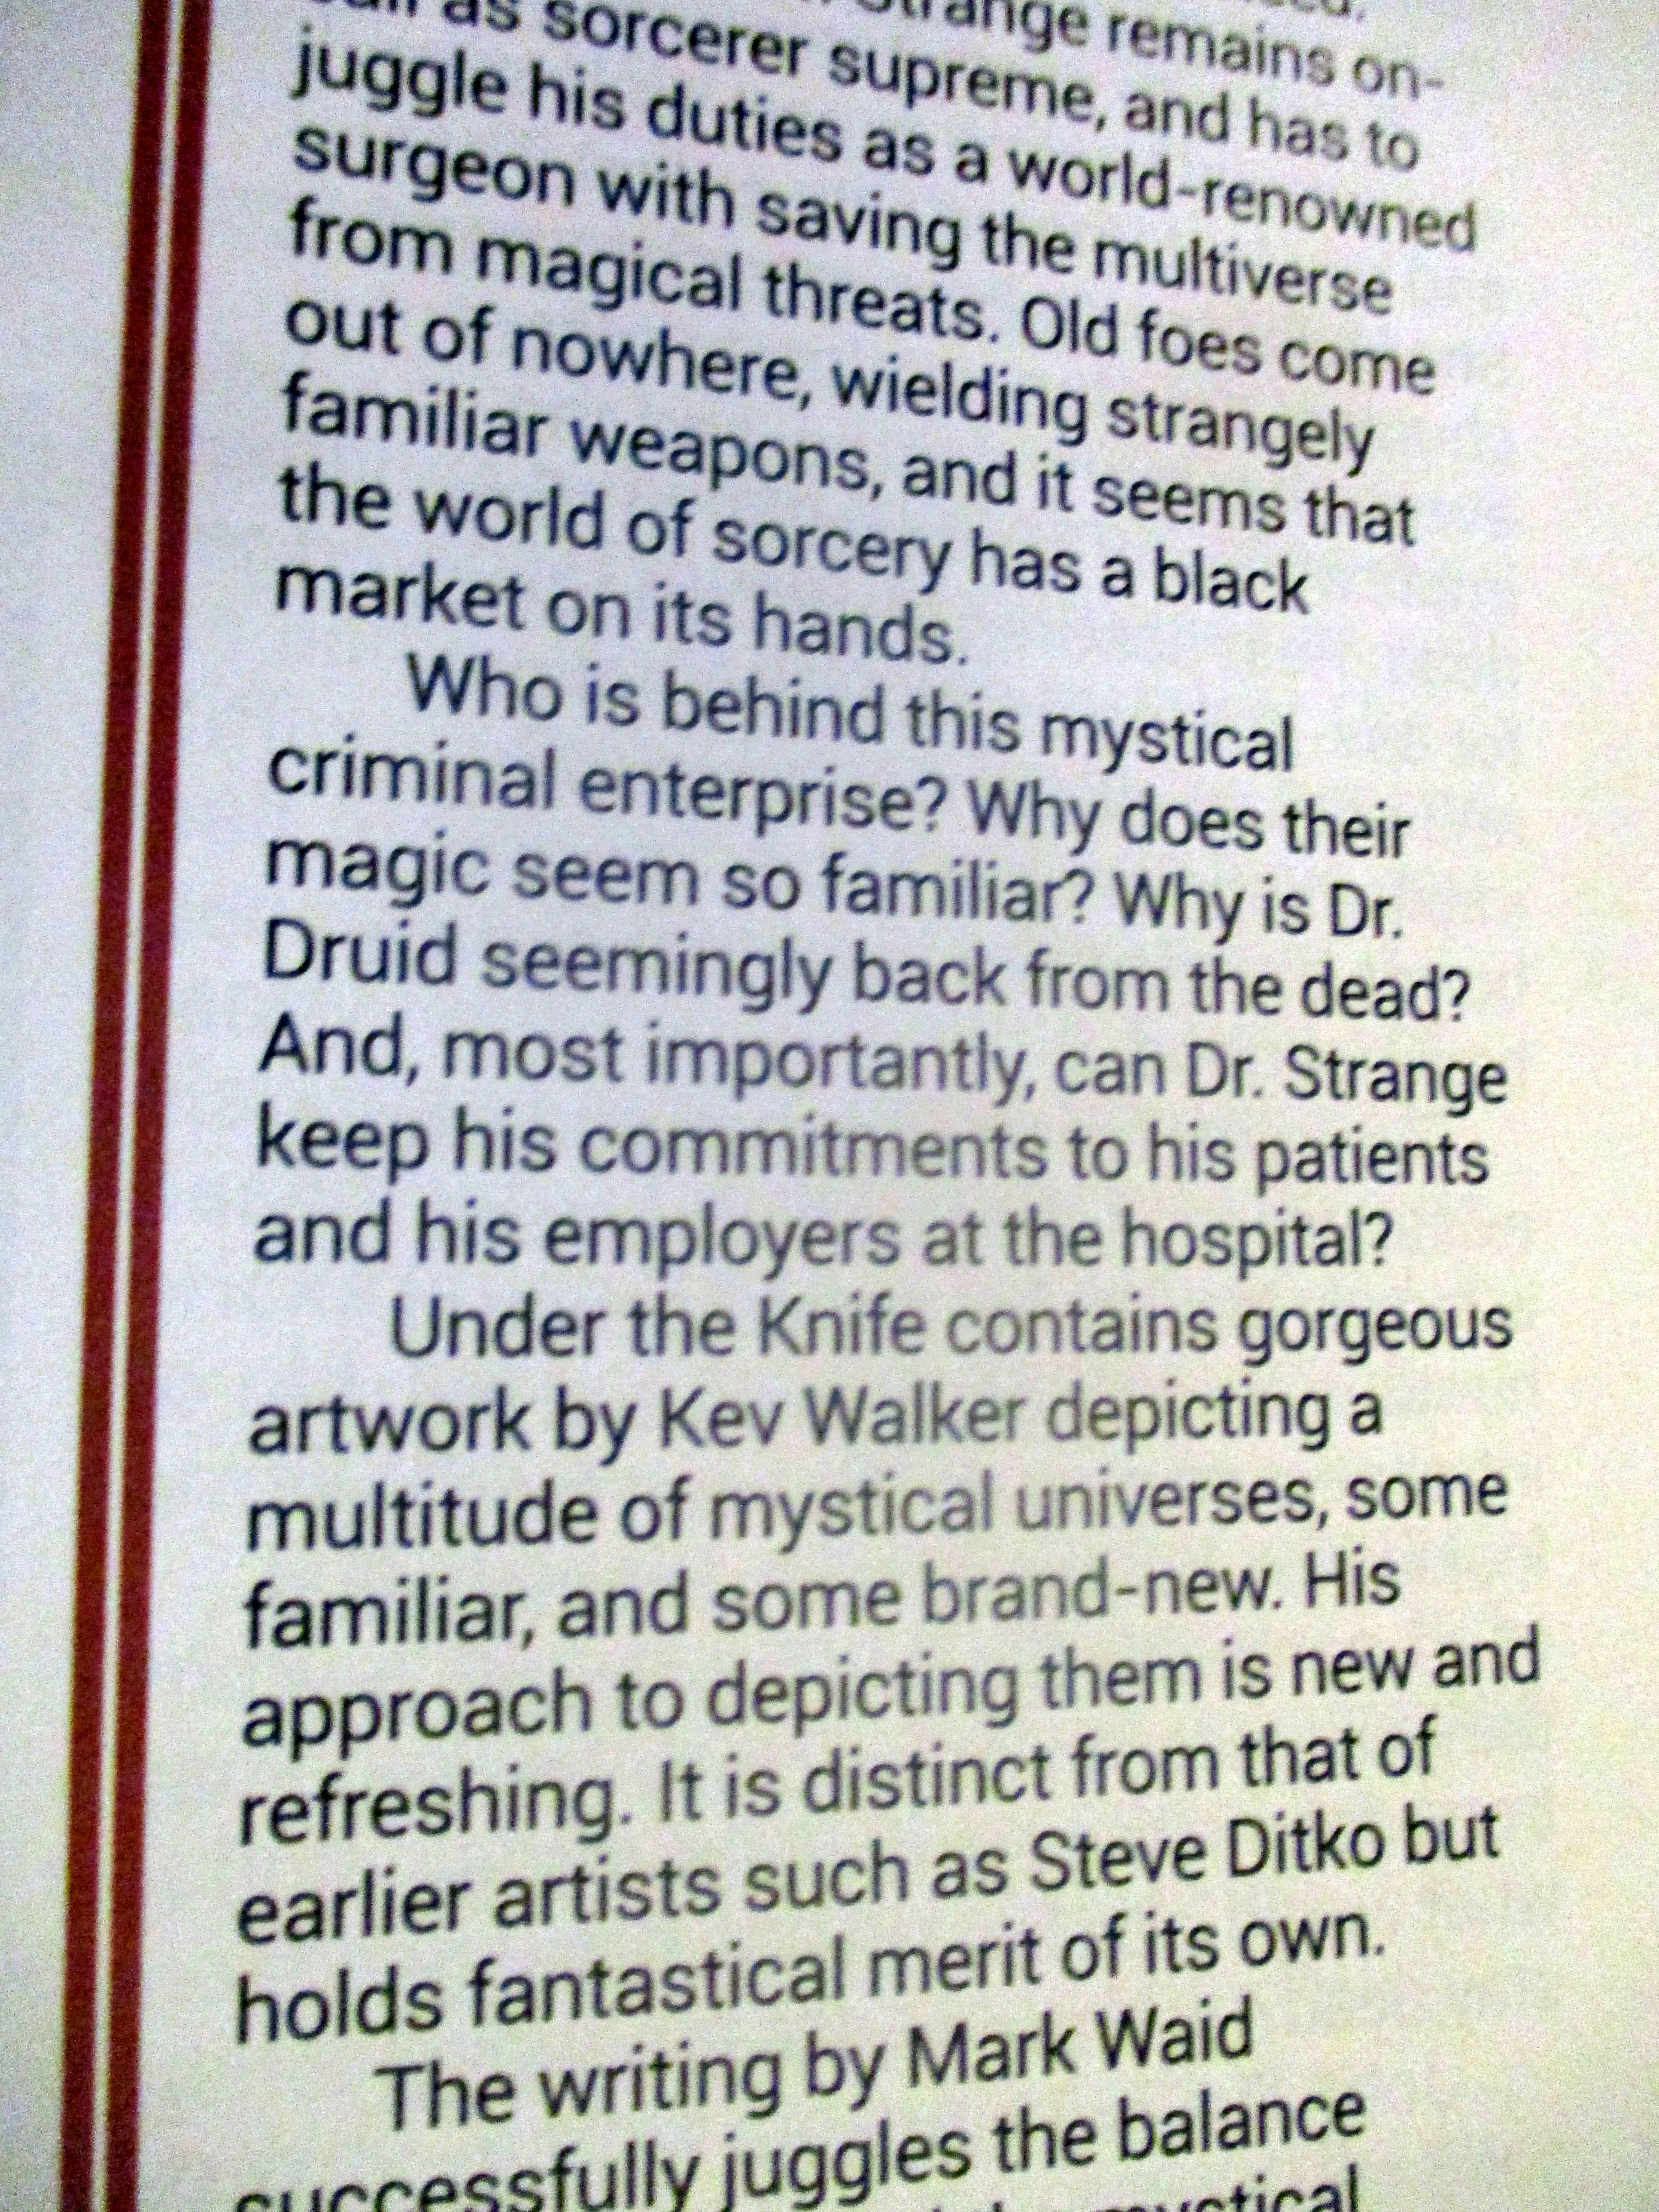 Text in Review of Doctor Strange: Surgeon Supreme in Starburst Magazine #475: The Mandalorian Collectors¿ Edition at The Wombatorium 2.0: A Capital Idea